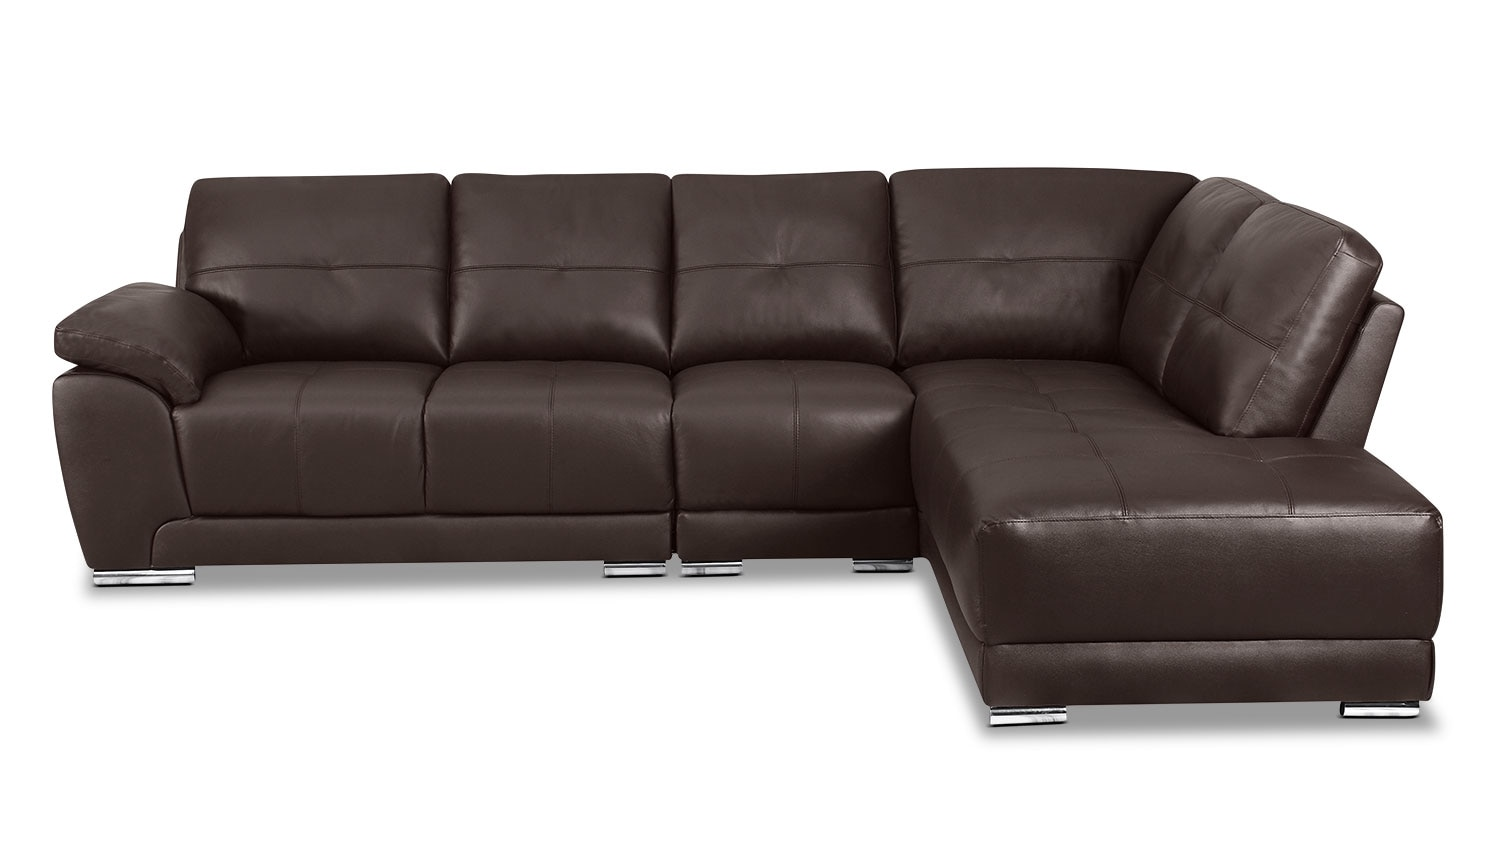 Living Room Furniture - Rylee 3-Piece Genuine Leather Right-Facing Sectional - Brown